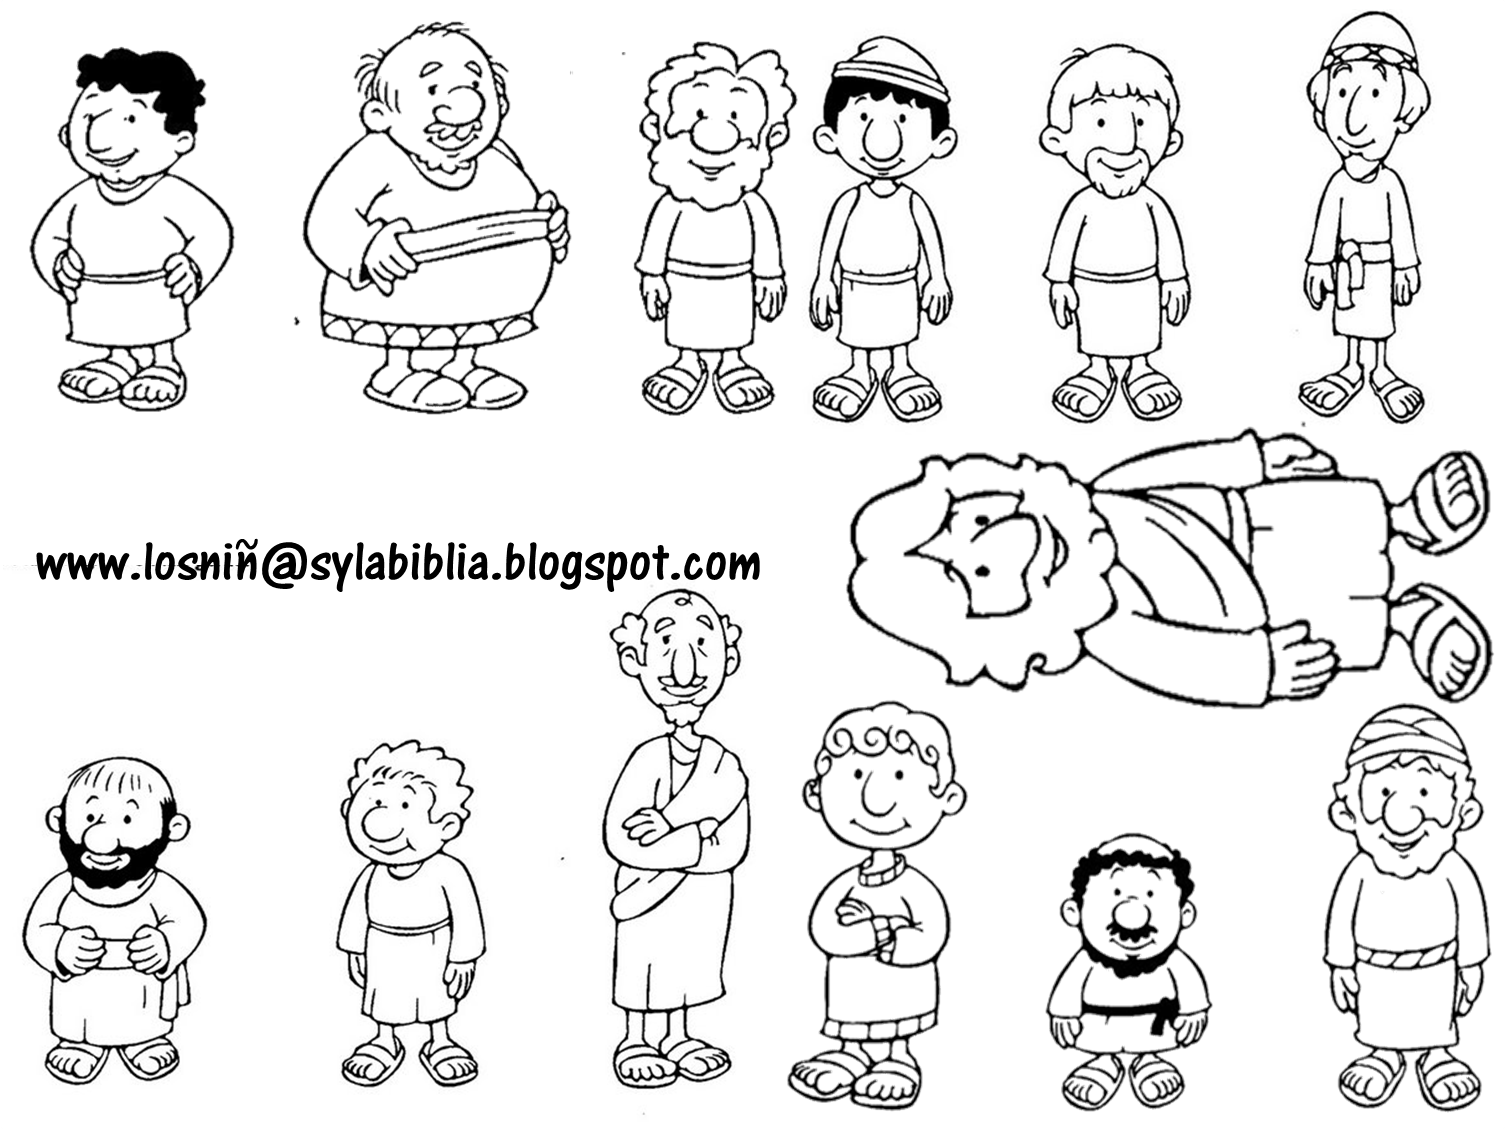 jesus and the 12 disciples coloring page 45 bible story coloring pages creation jesus miracles jesus 12 page coloring and disciples the